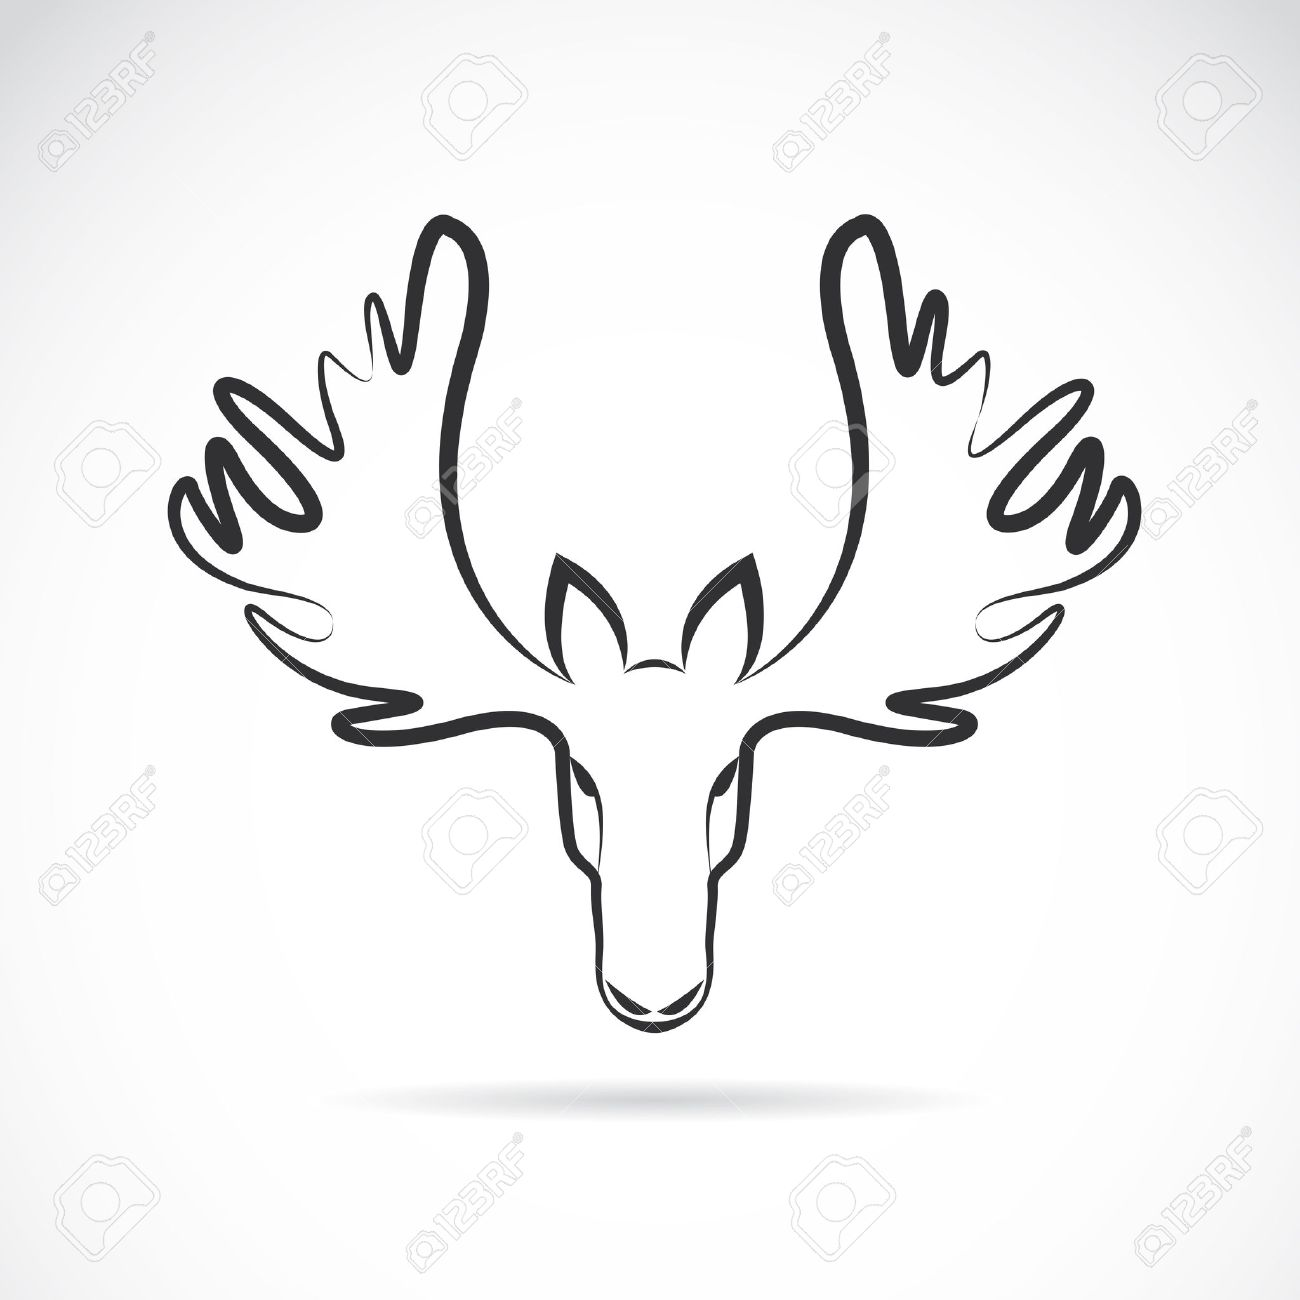 vector images of moose deer head on a white background royalty